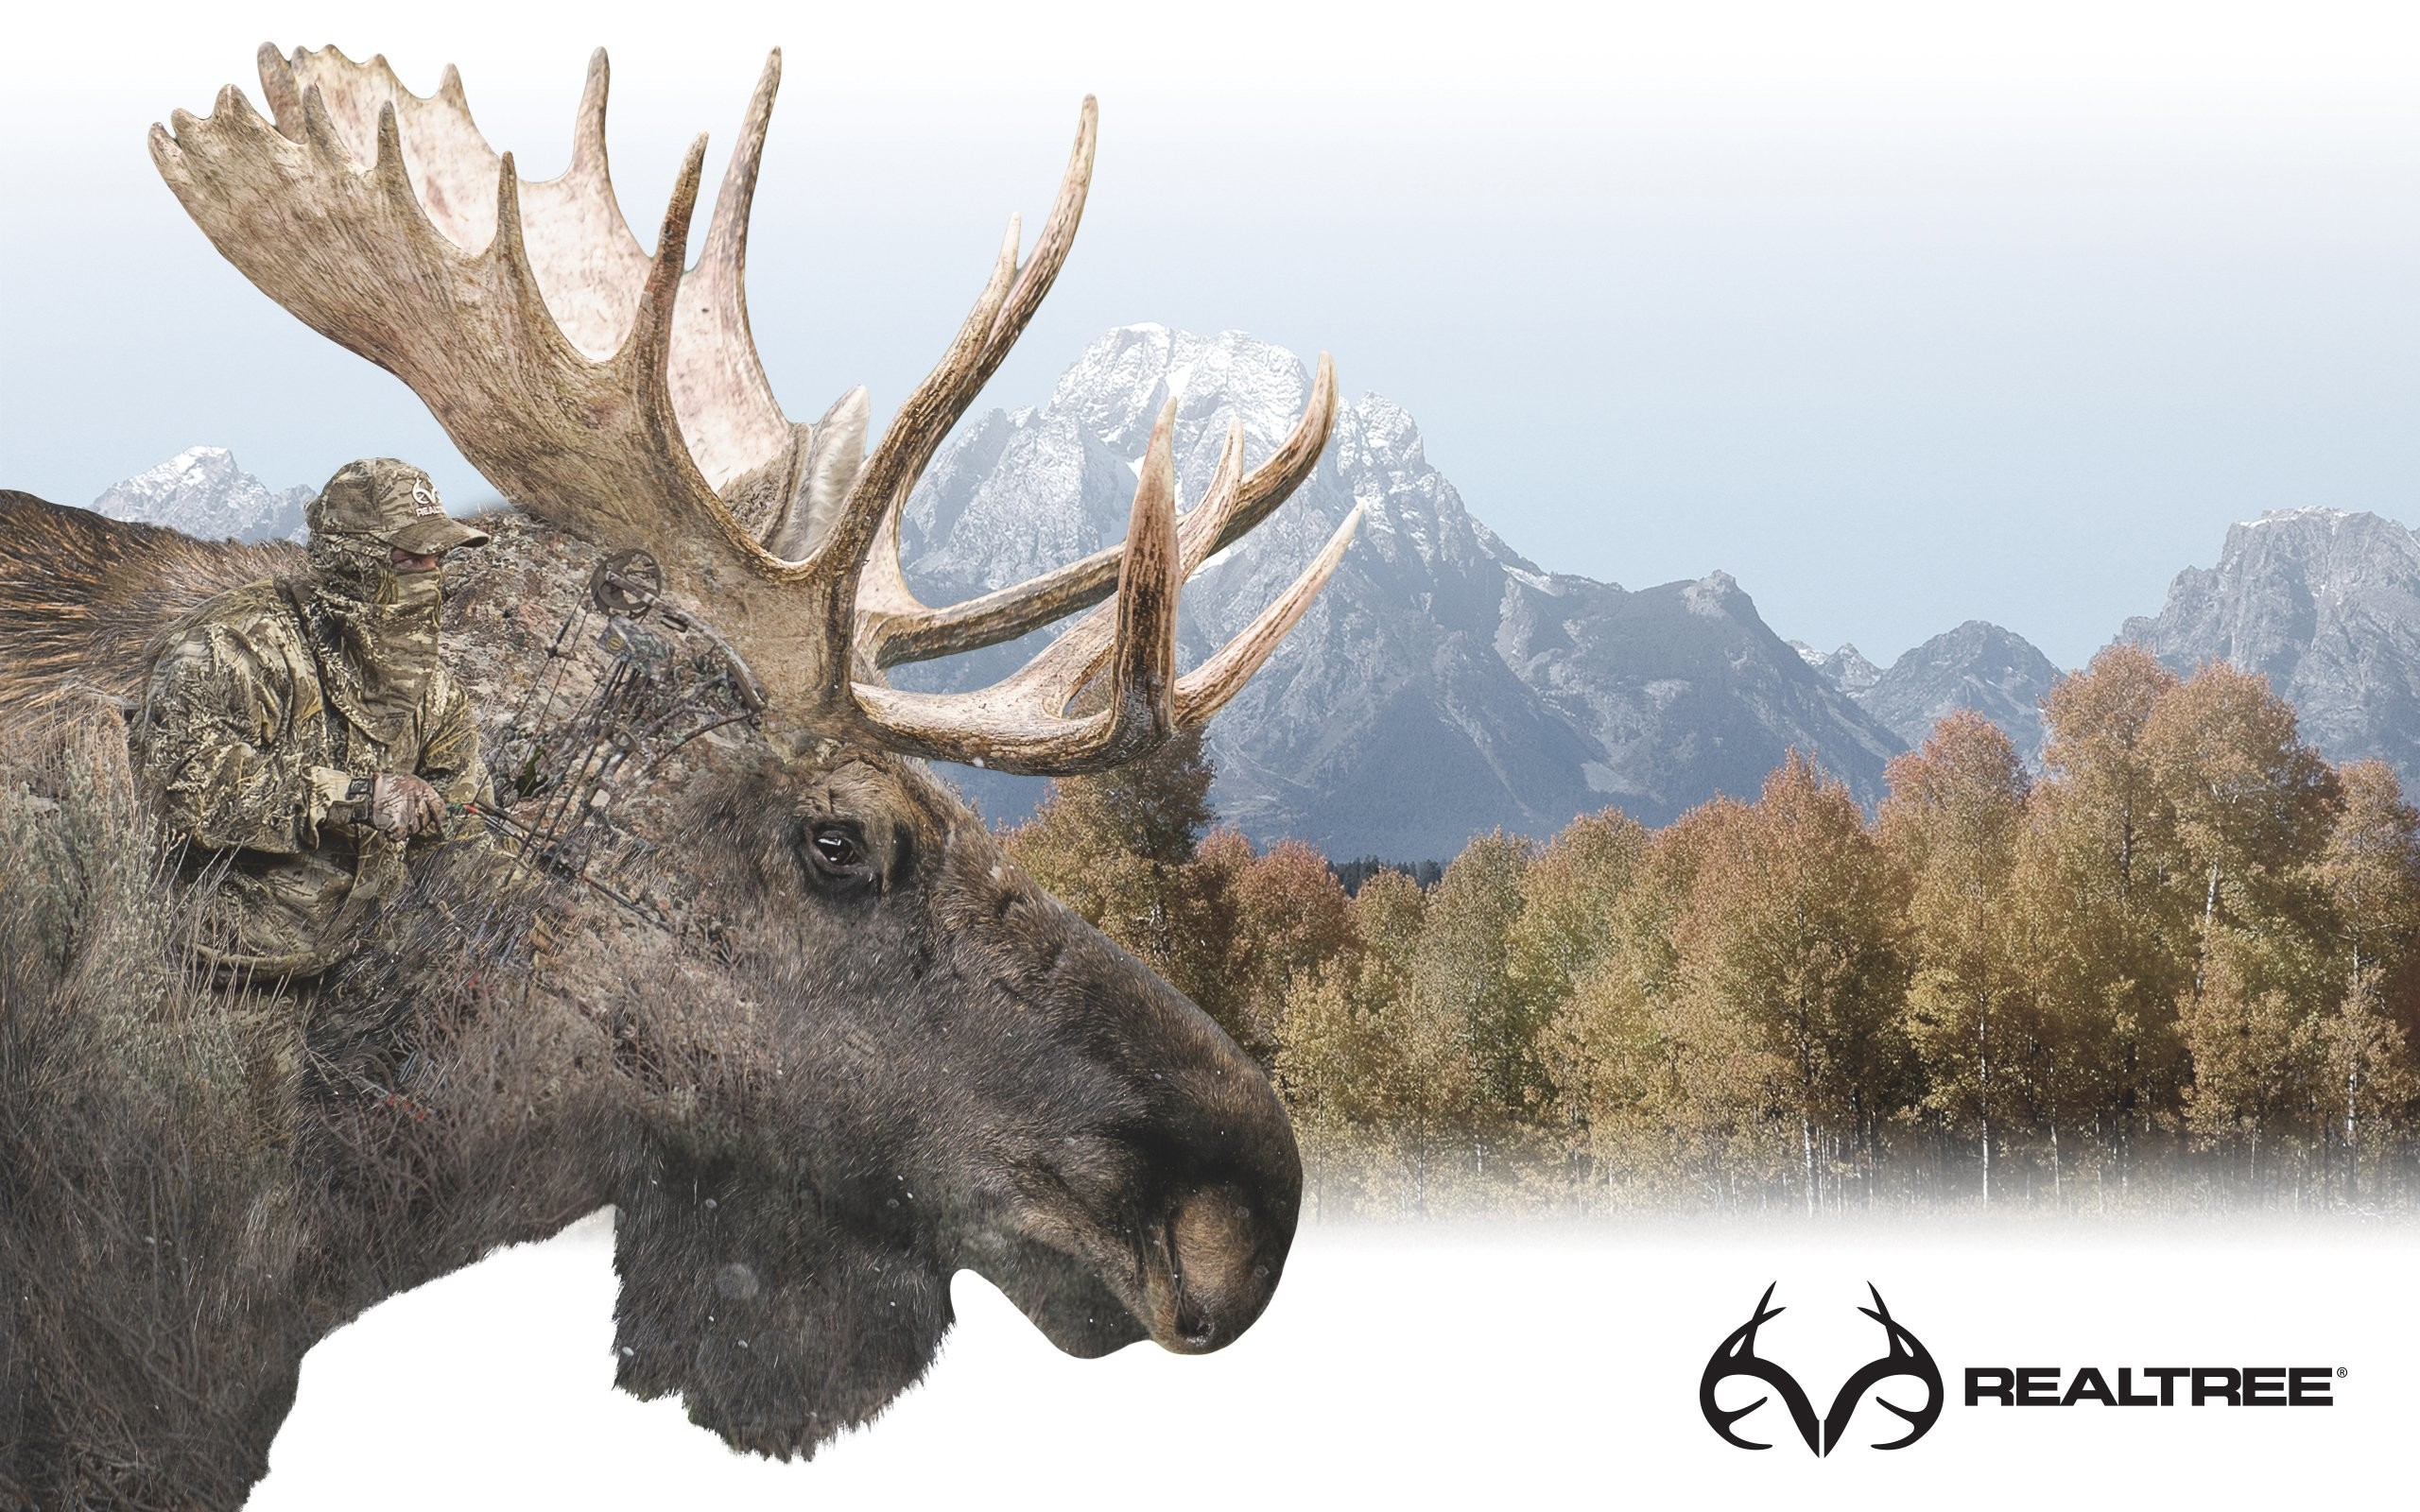 Realtree wallpapers 74 background pictures - Realtree wallpaper ...